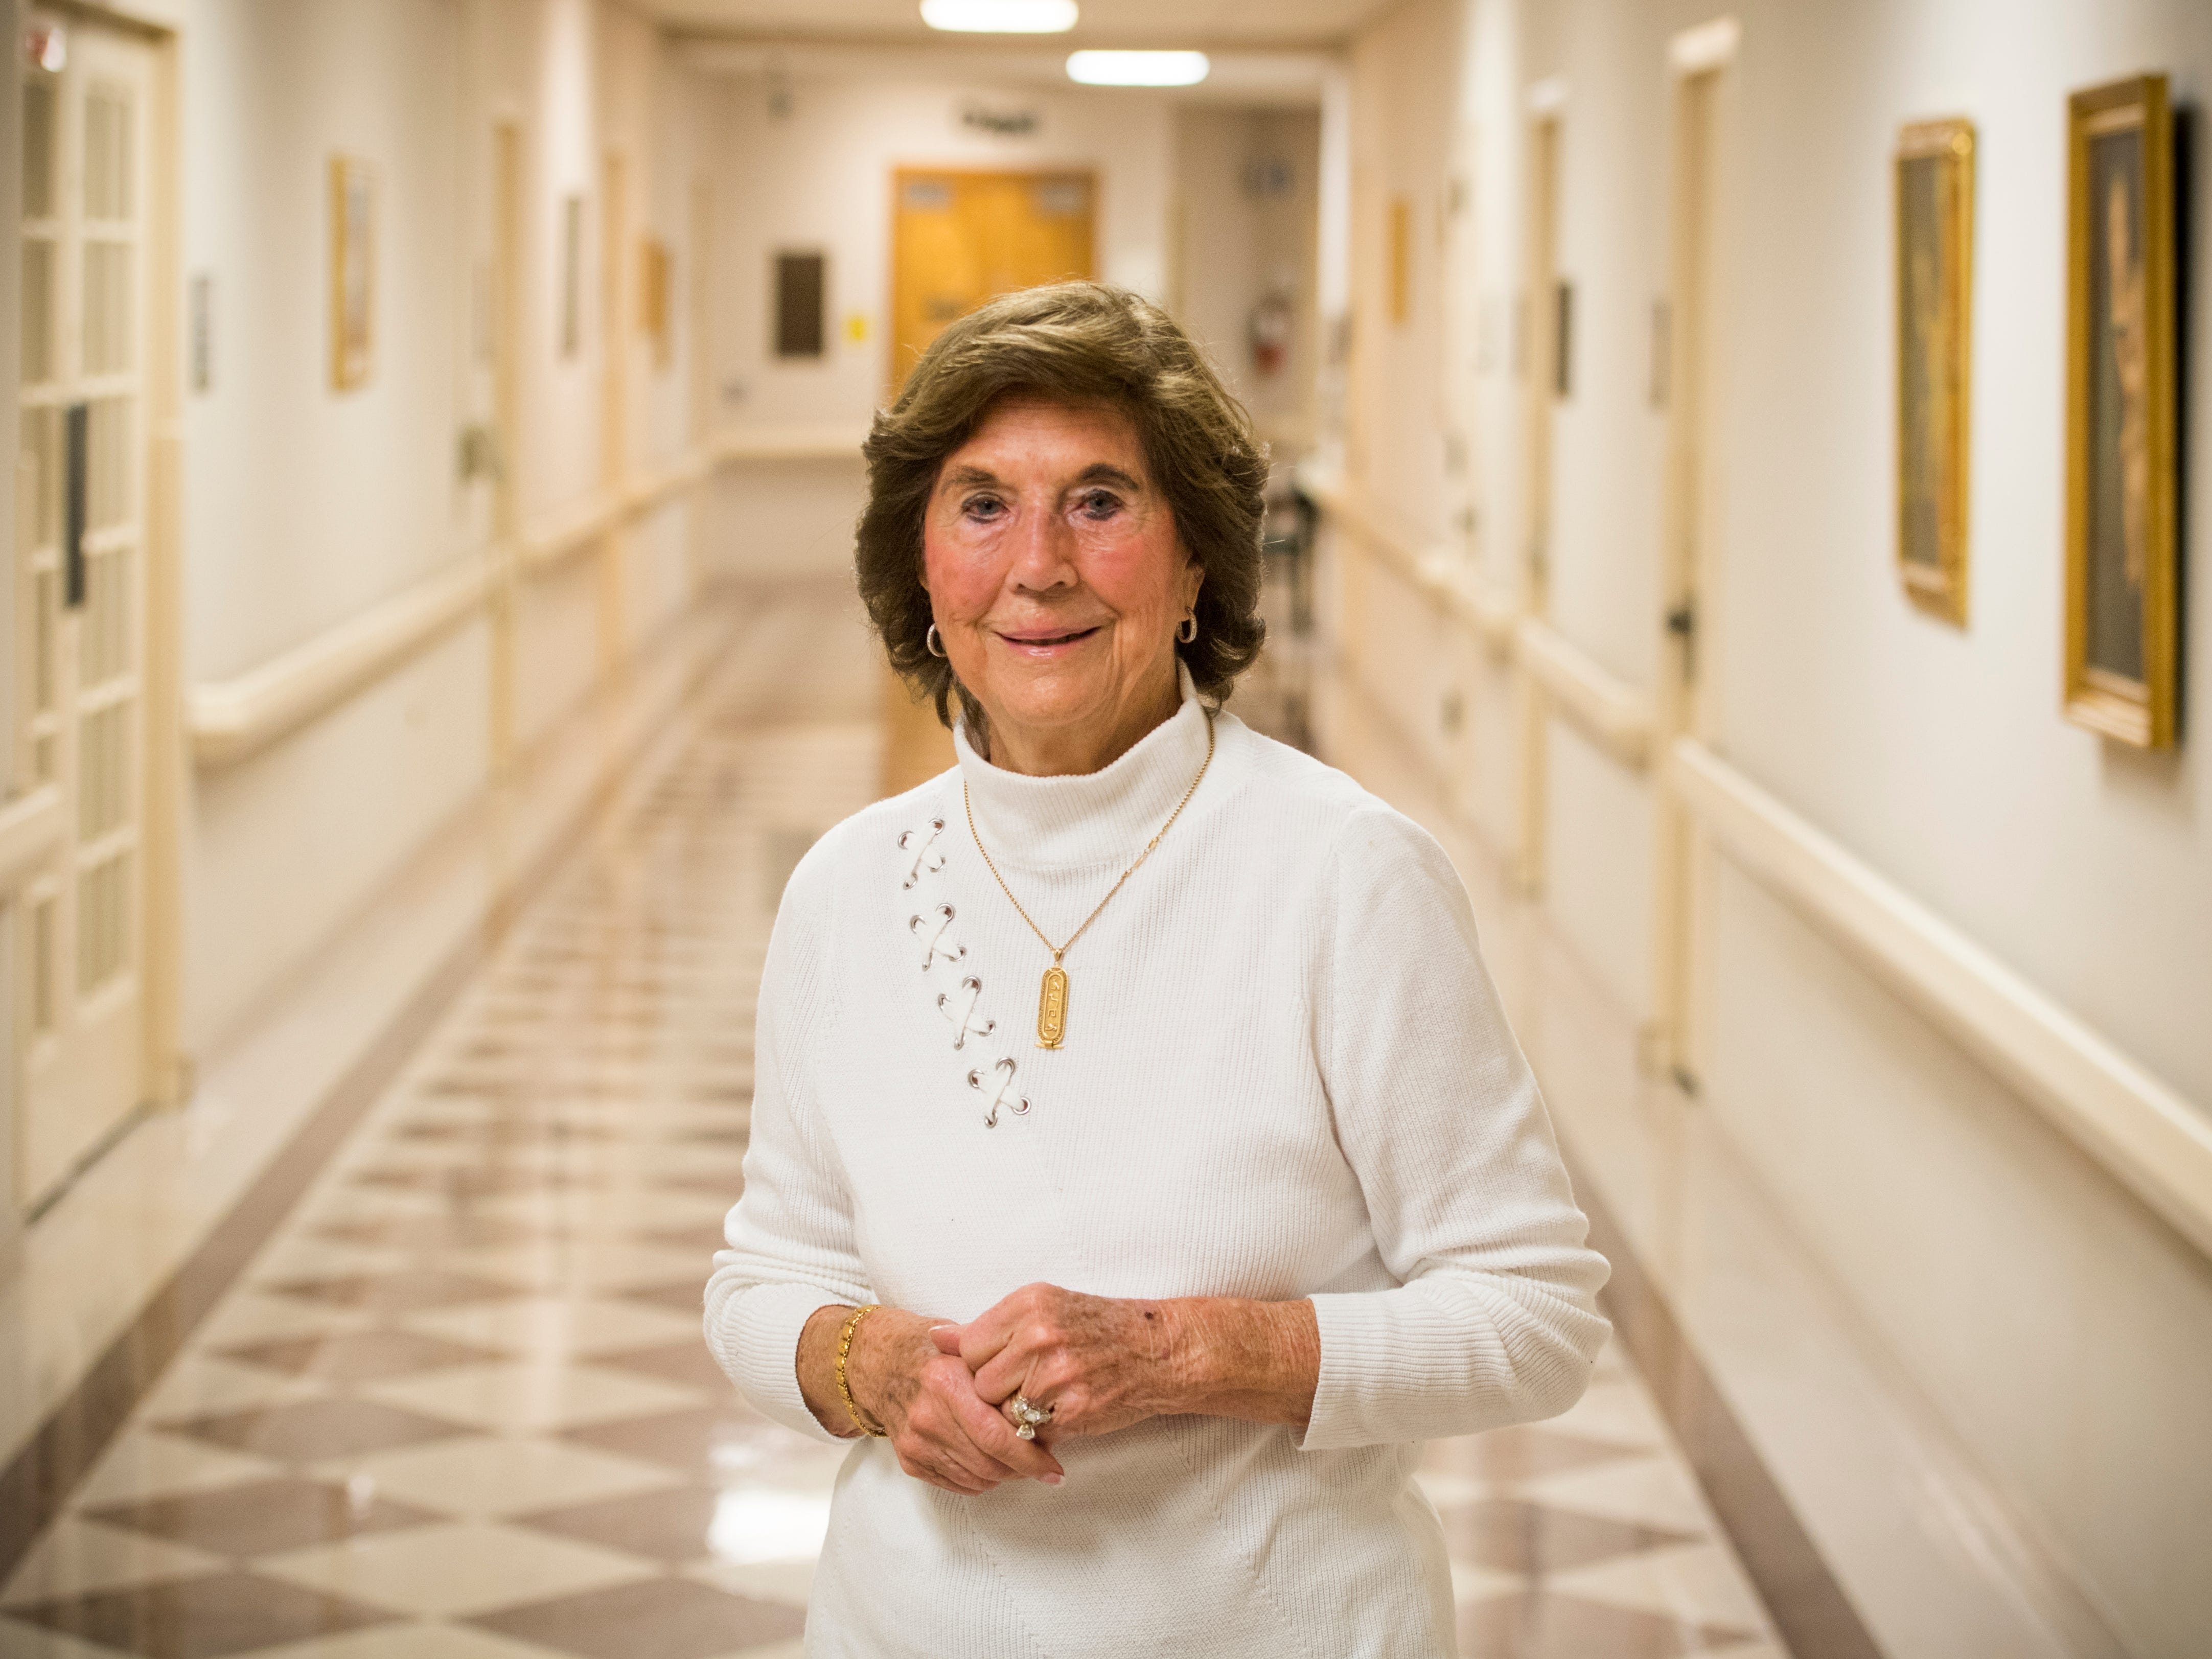 Former St. Mary's School of Nursing director Margaret Heins at Physicians Regional Medical Center on Friday, November 30, 2018.